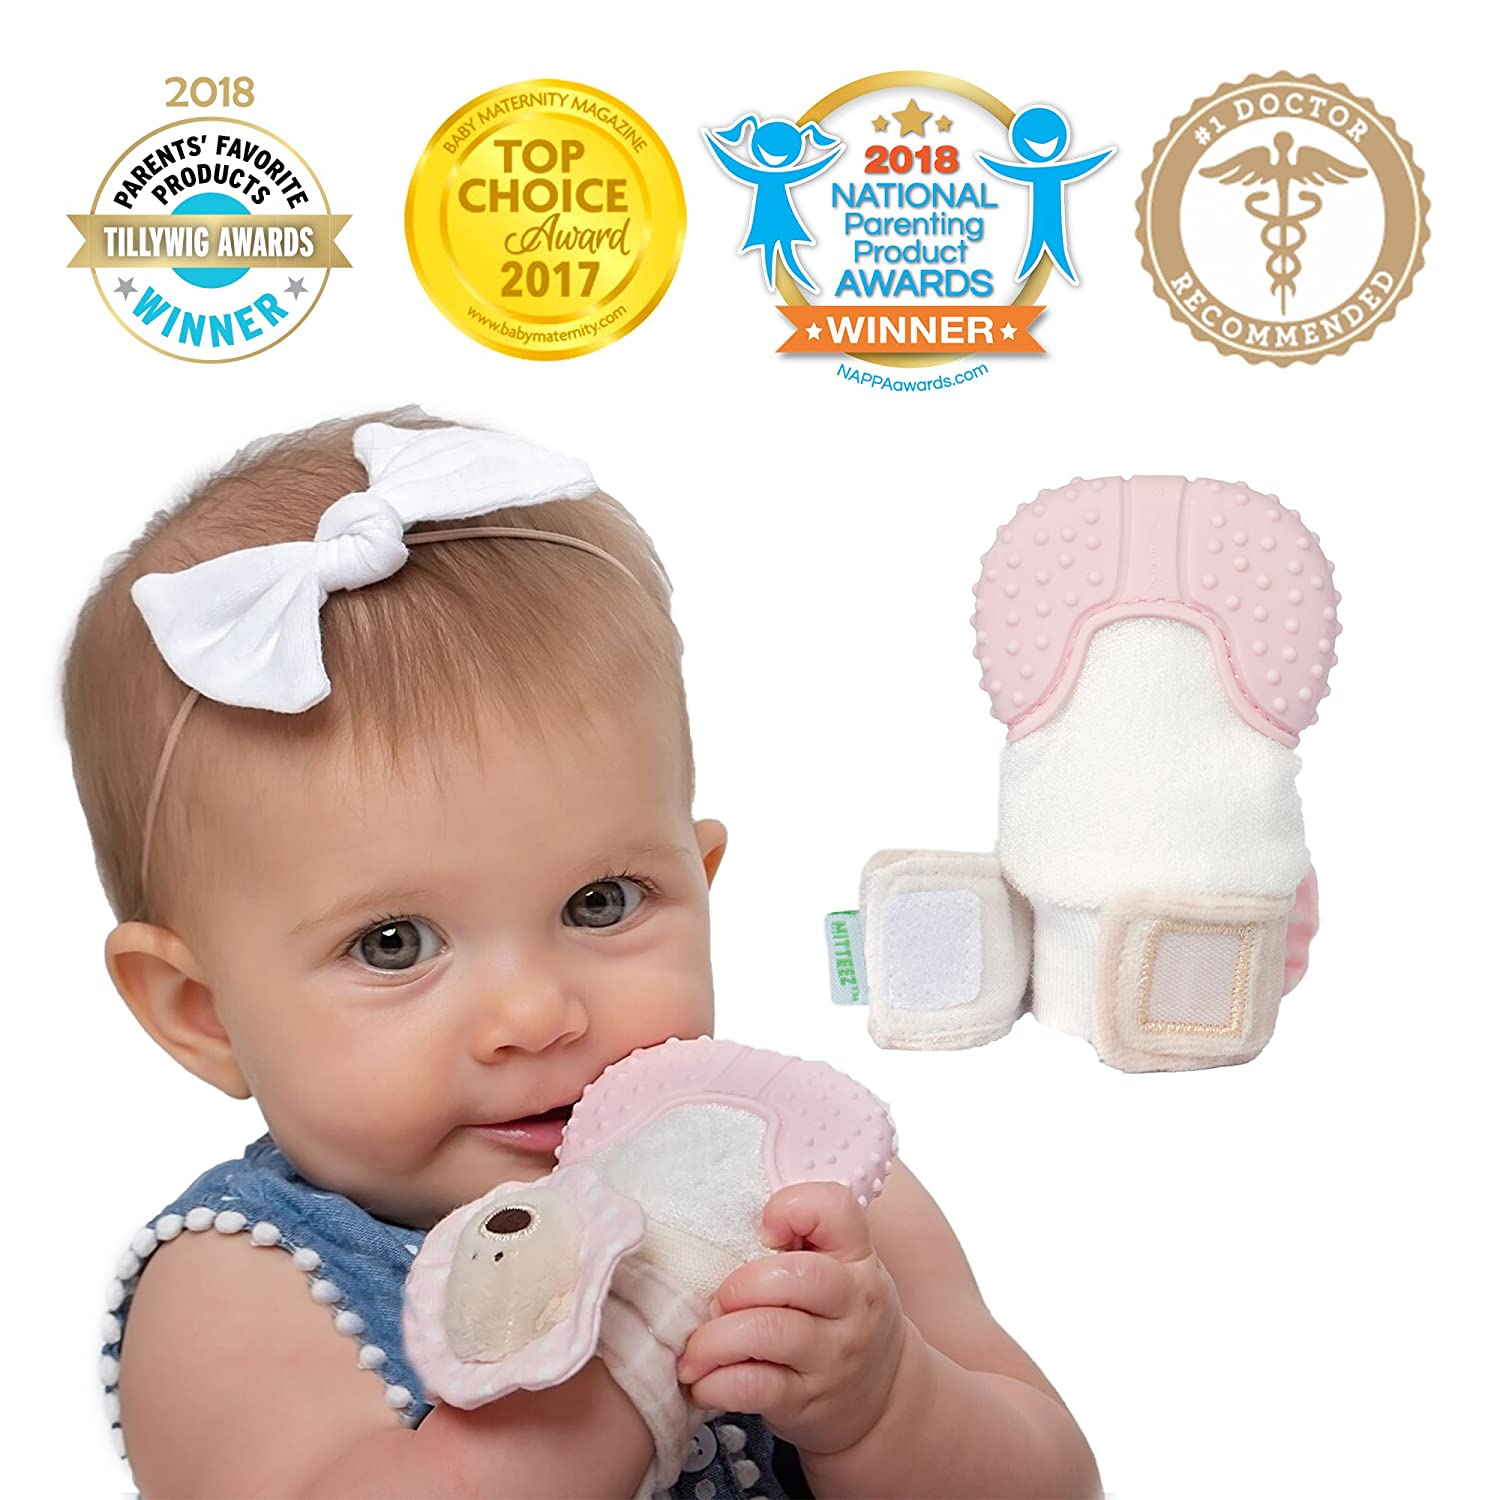 MITTEEZ Organic Premium Teething Mitten and Keepsake for babies 0-6 months - Pink PK1-S1-7760